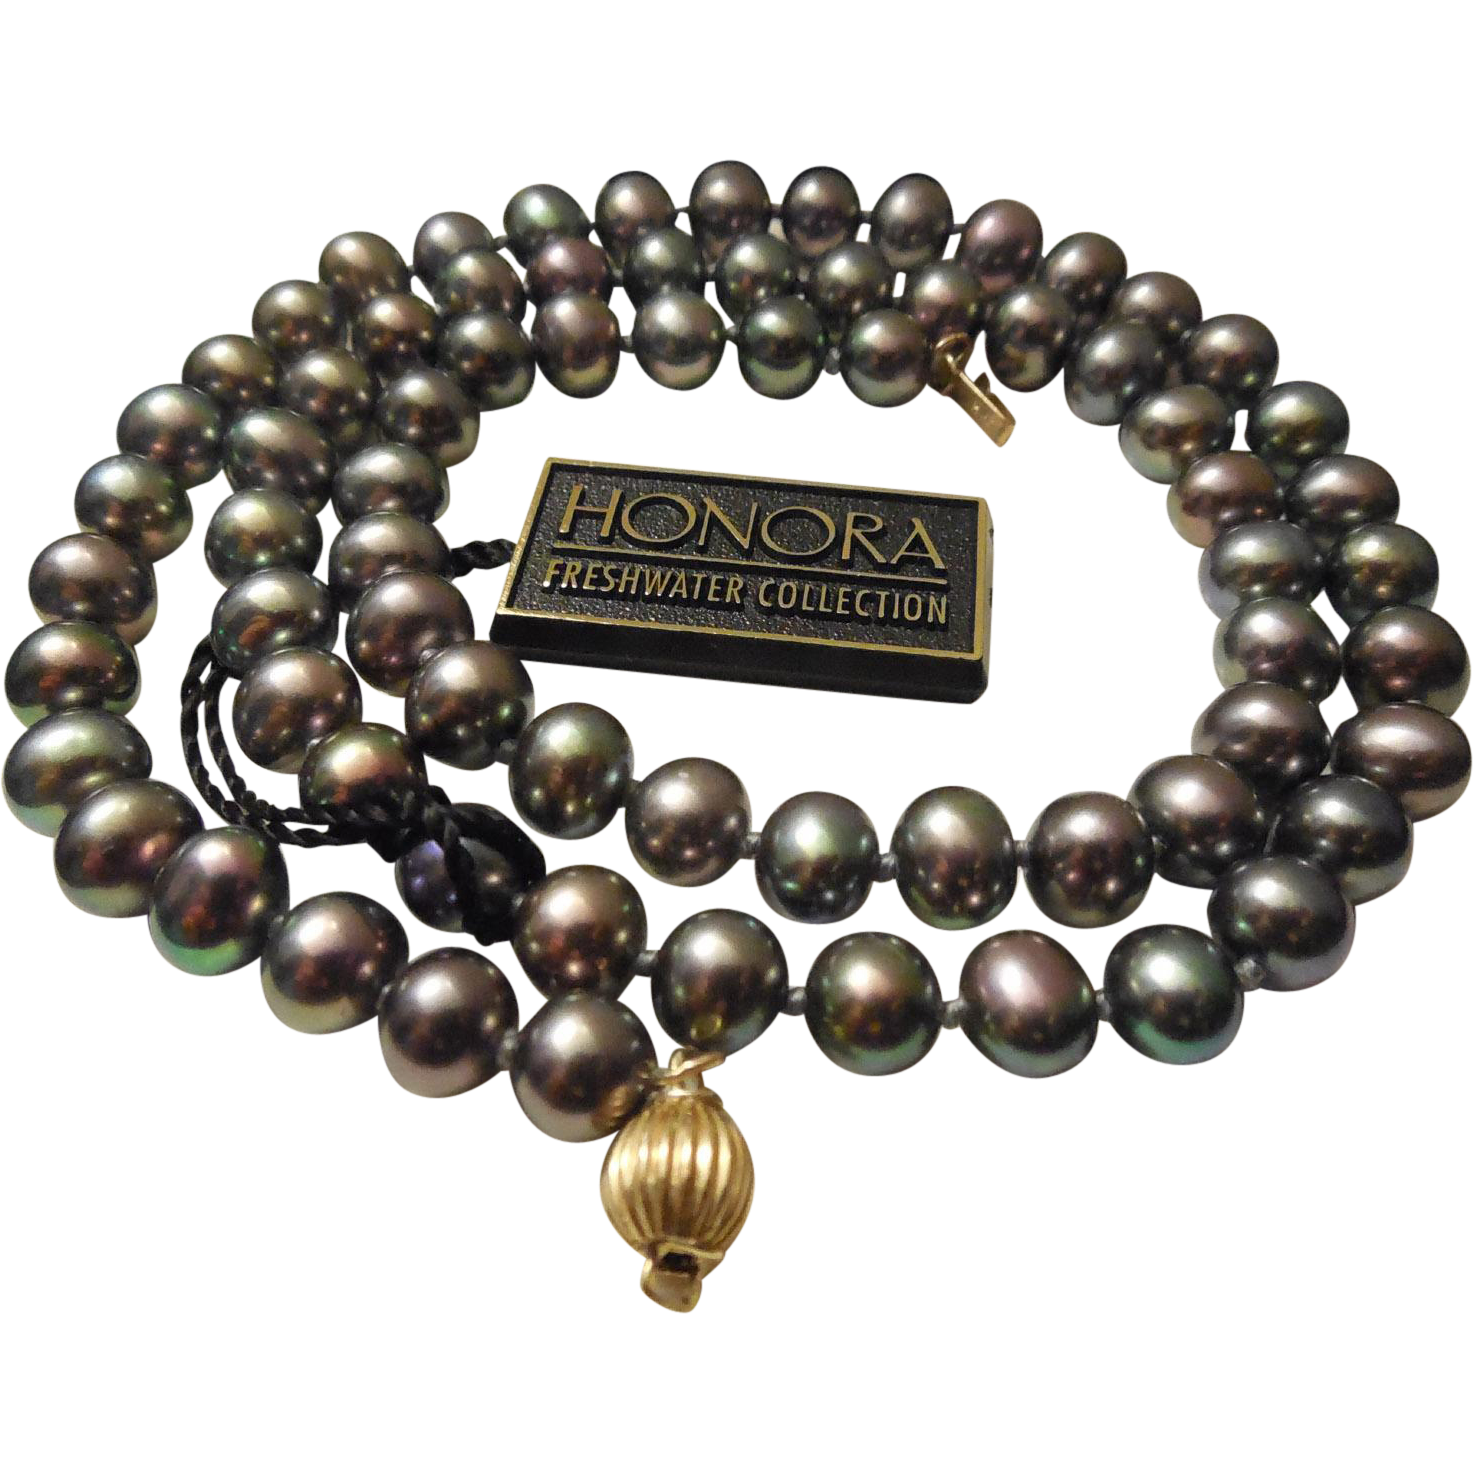 14K & Black Pearl Necklace - Honora Freshwater Collection With Tag